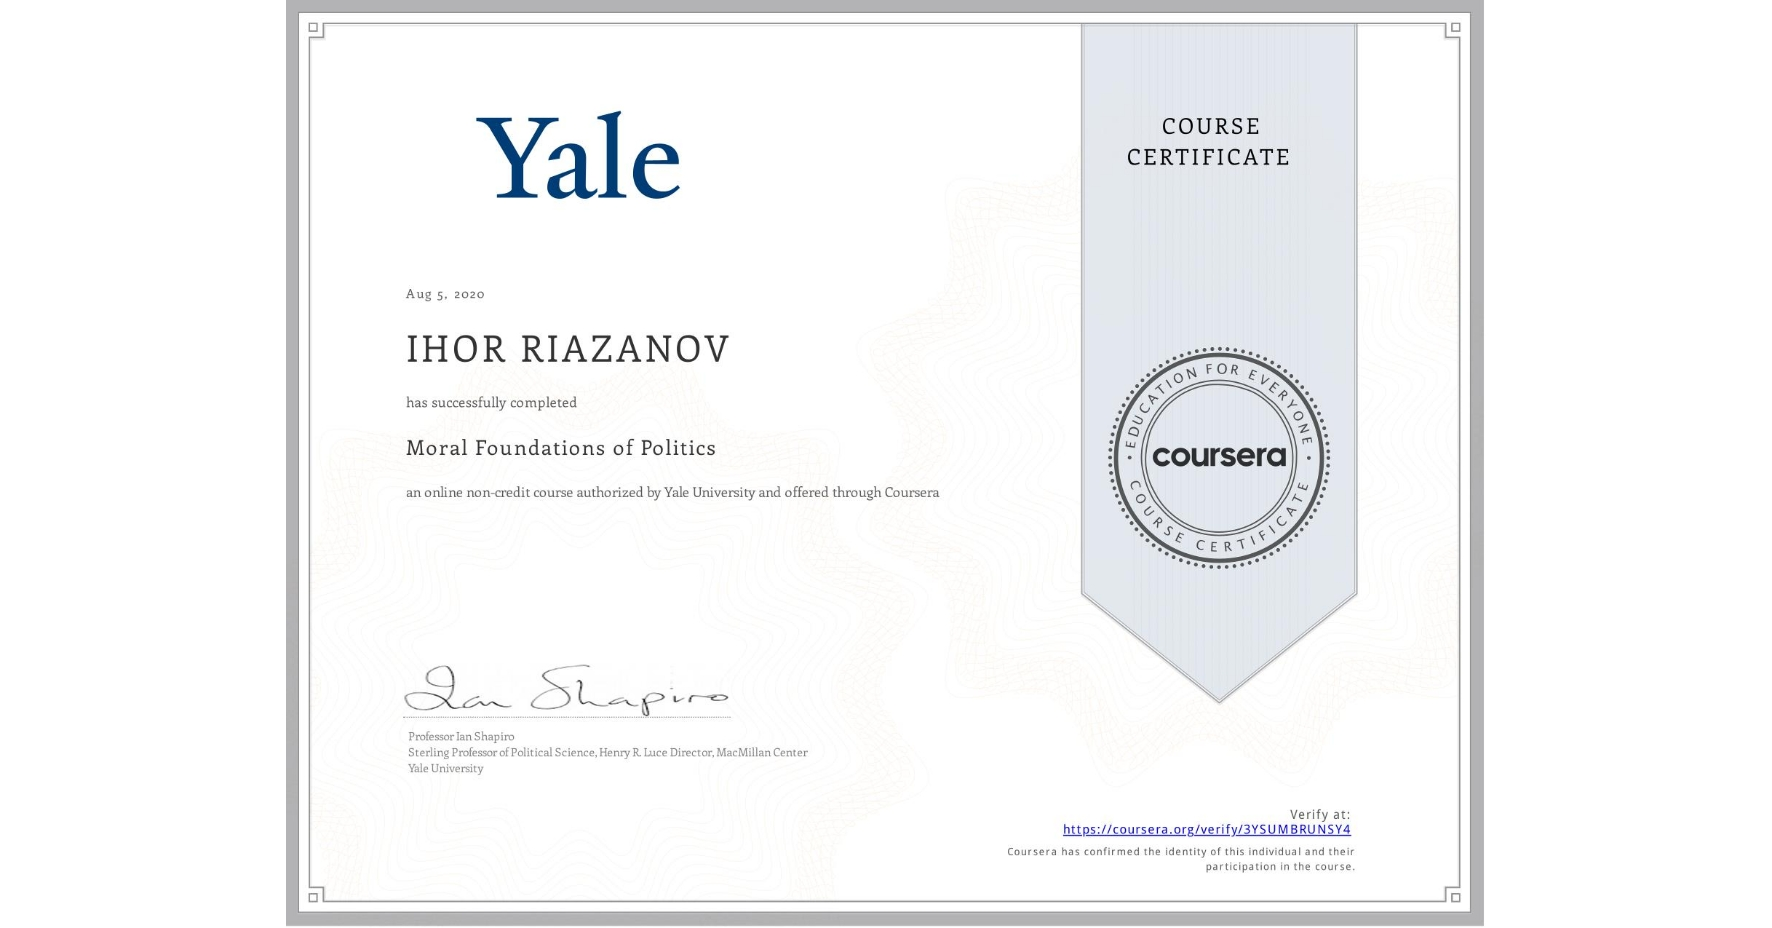 View certificate for IHOR RIAZANOV, Moral Foundations of Politics , an online non-credit course authorized by Yale University and offered through Coursera